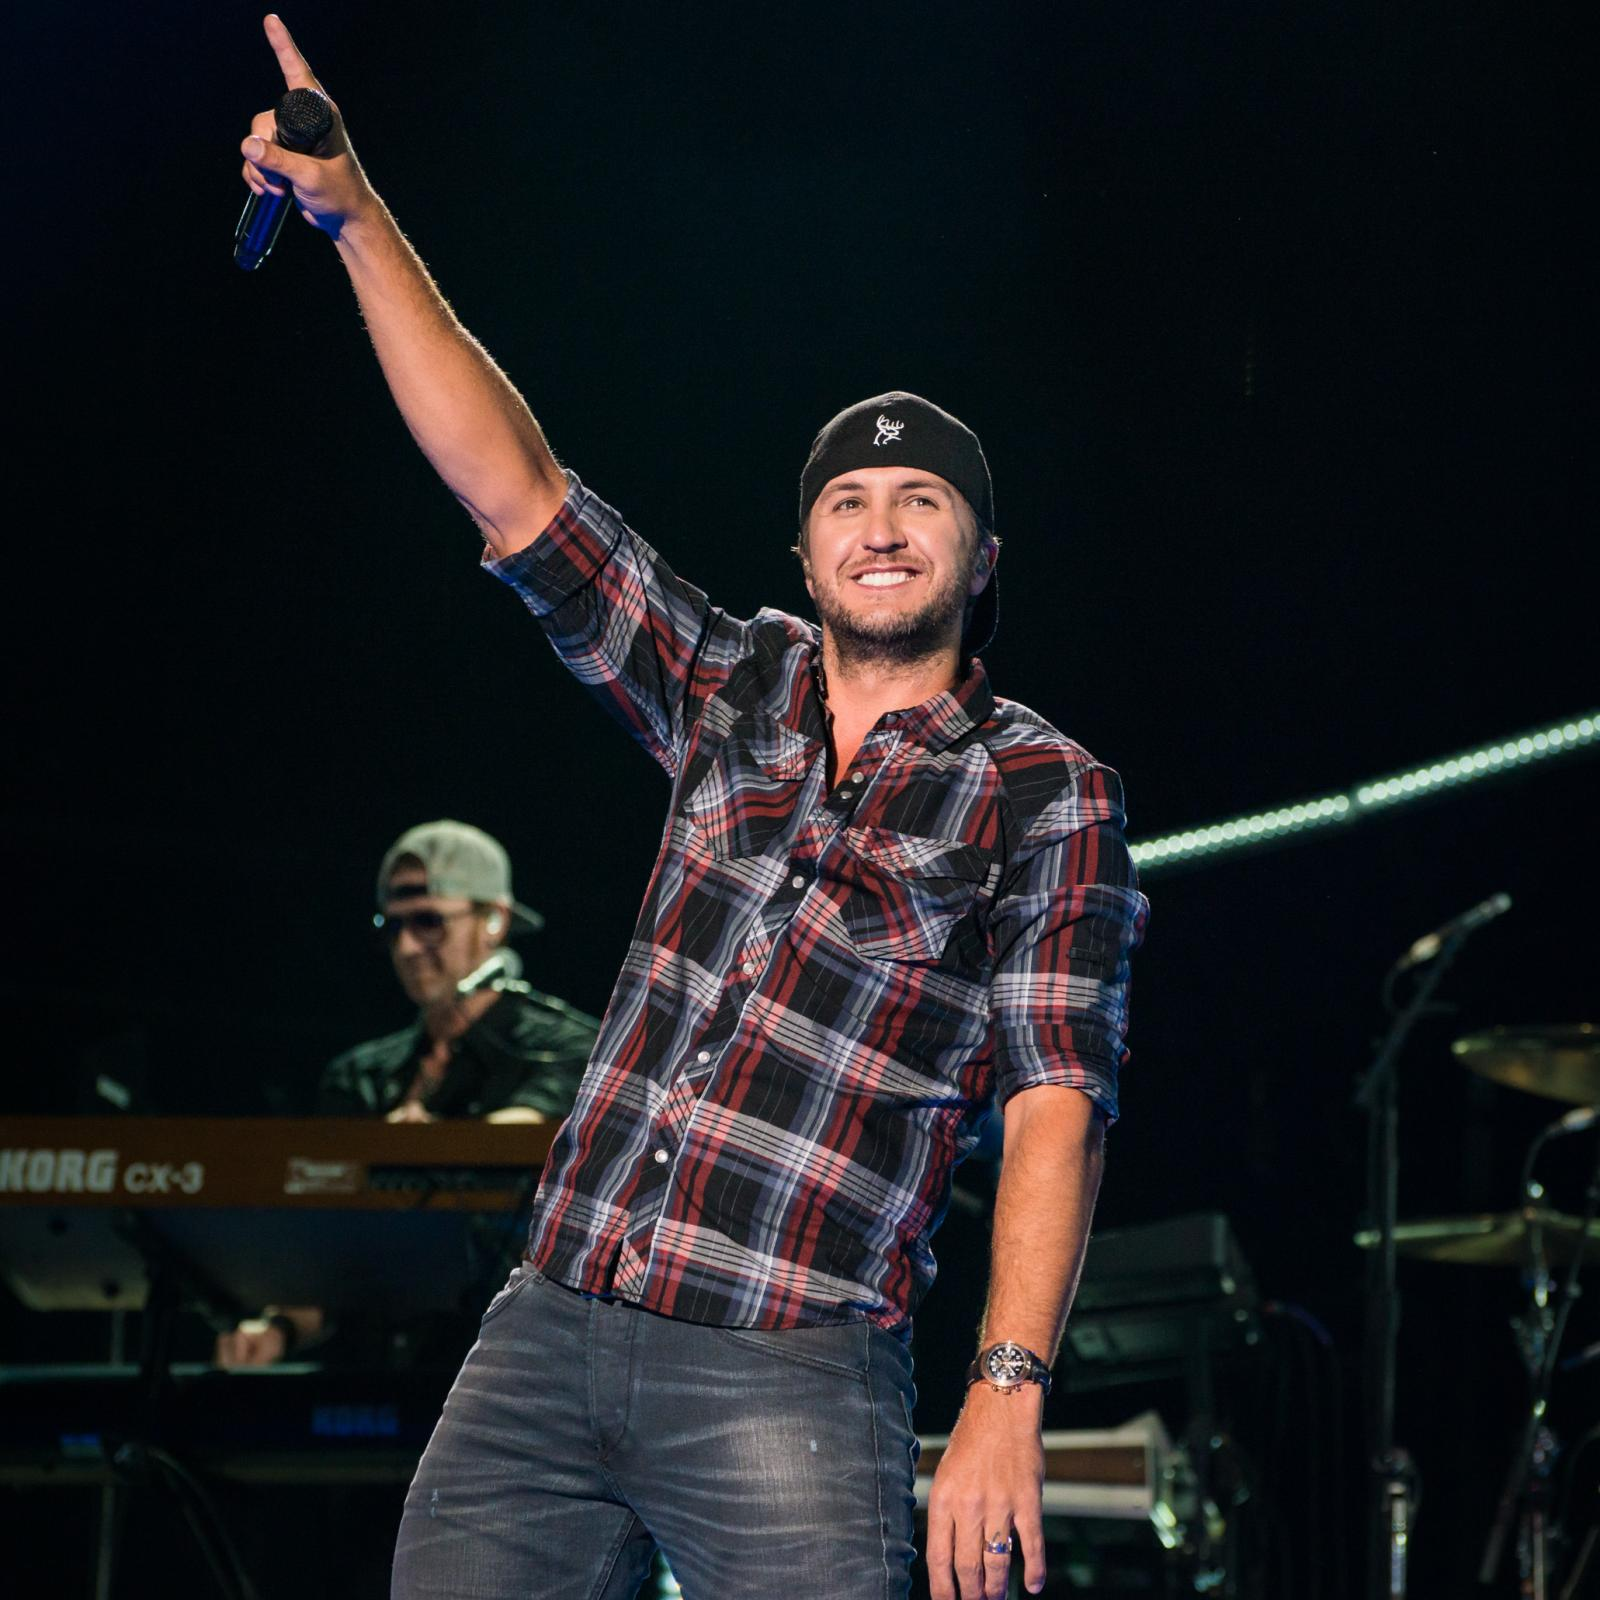 WIN Tickets and Meet & Greet Passes for Luke Bryan's 2017 Farm Tour